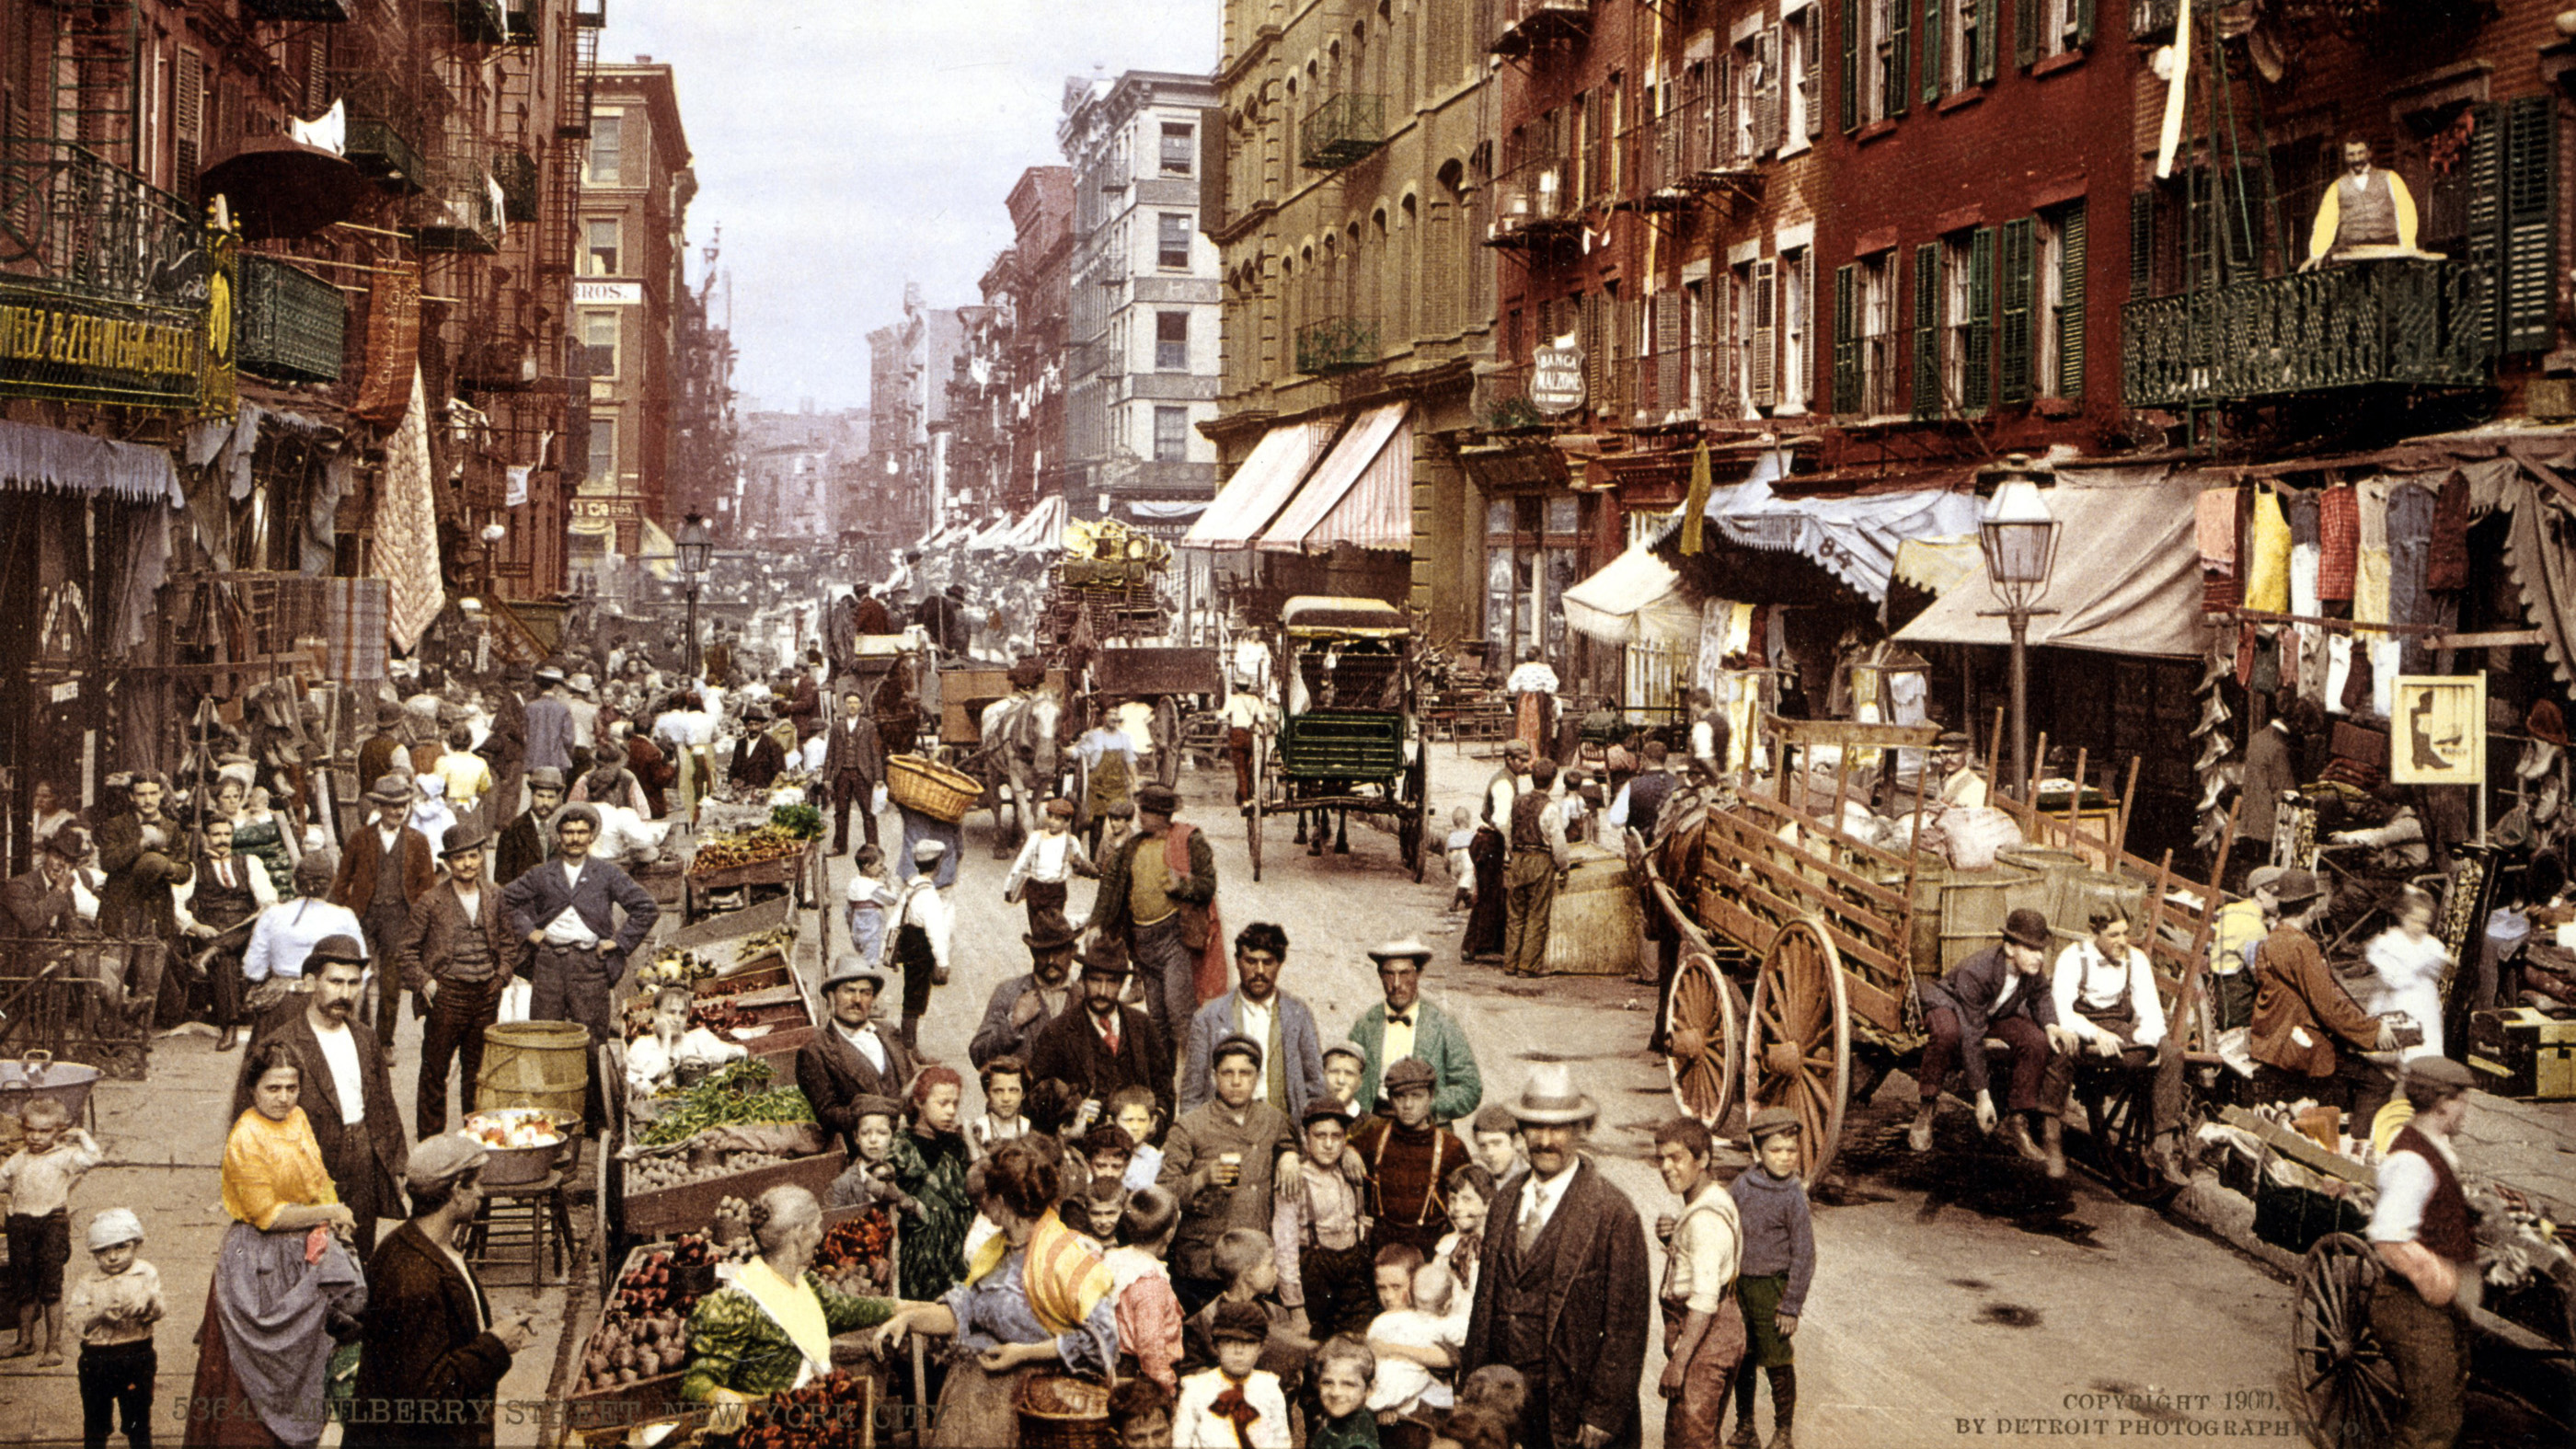 New York City's 'Little Italy'. Mulberry Street, Lower East Side, circa 1900